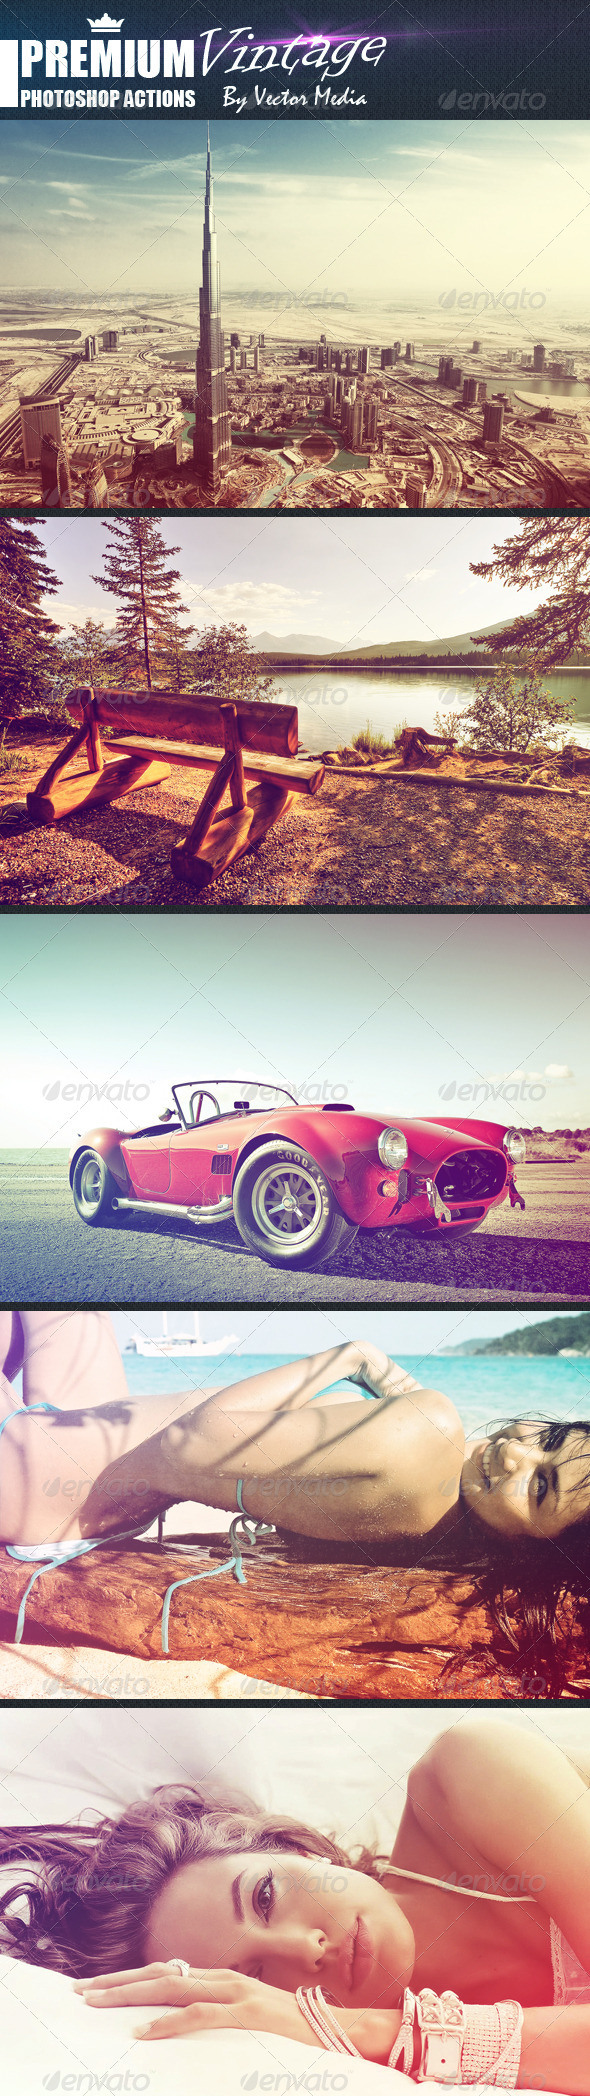 GraphicRiver Premium Vintage Photoshop Actions 4768101